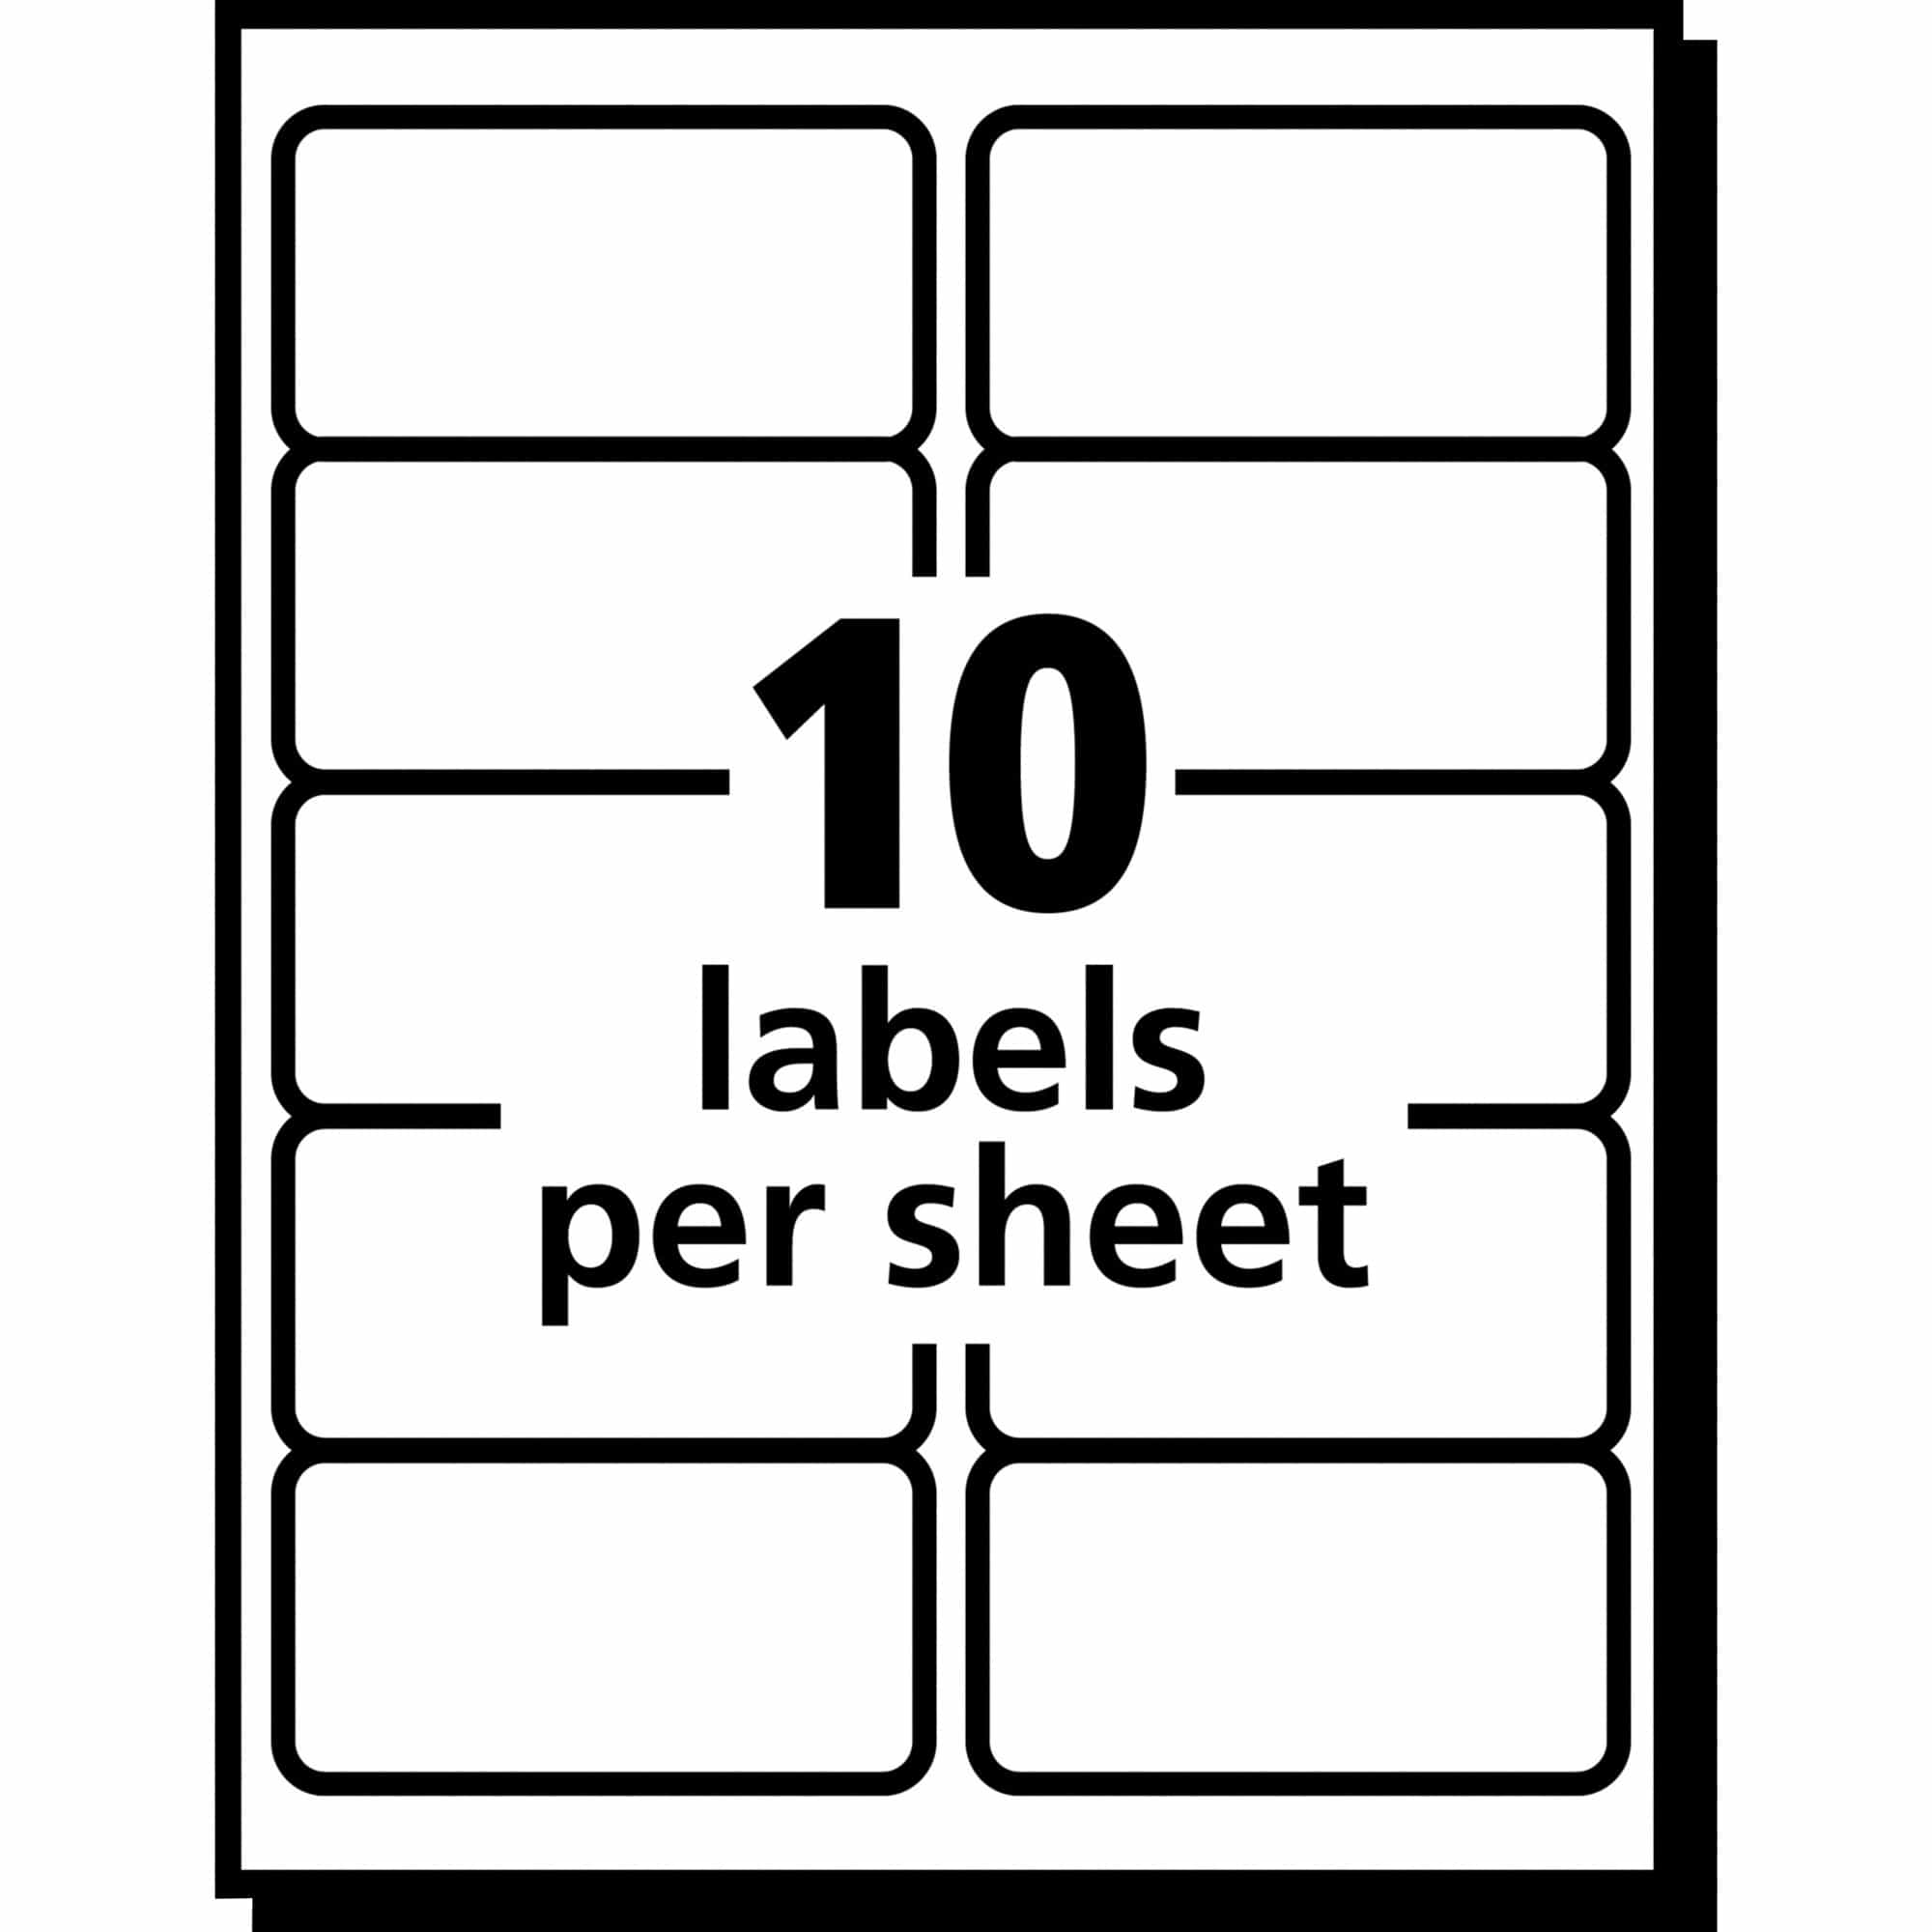 2 x 4 label template 10 per sheet and avery shipping label template 5163